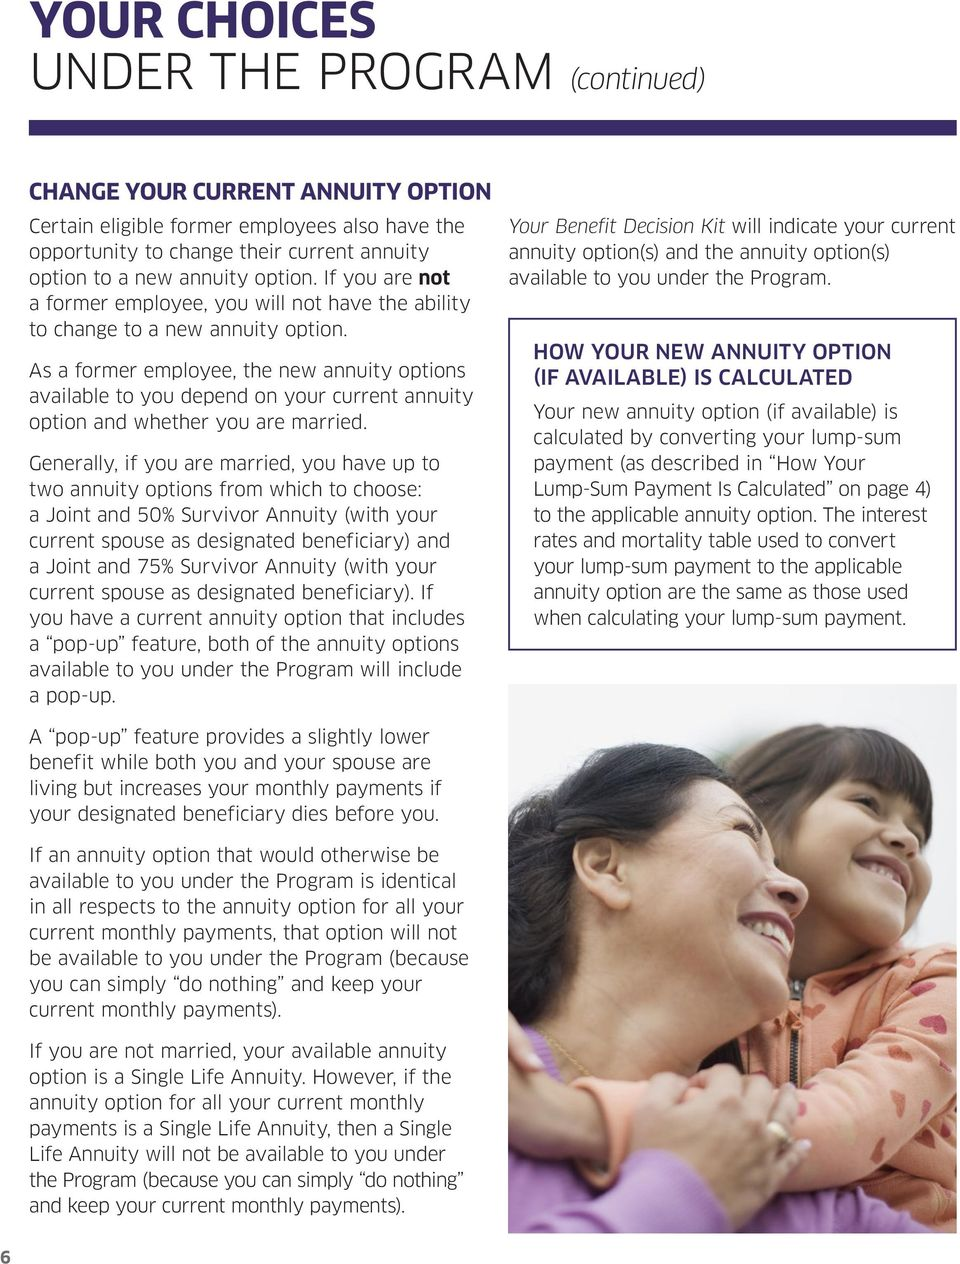 As a former employee, the new annuity options available to you depend on your current annuity option and whether you are married.